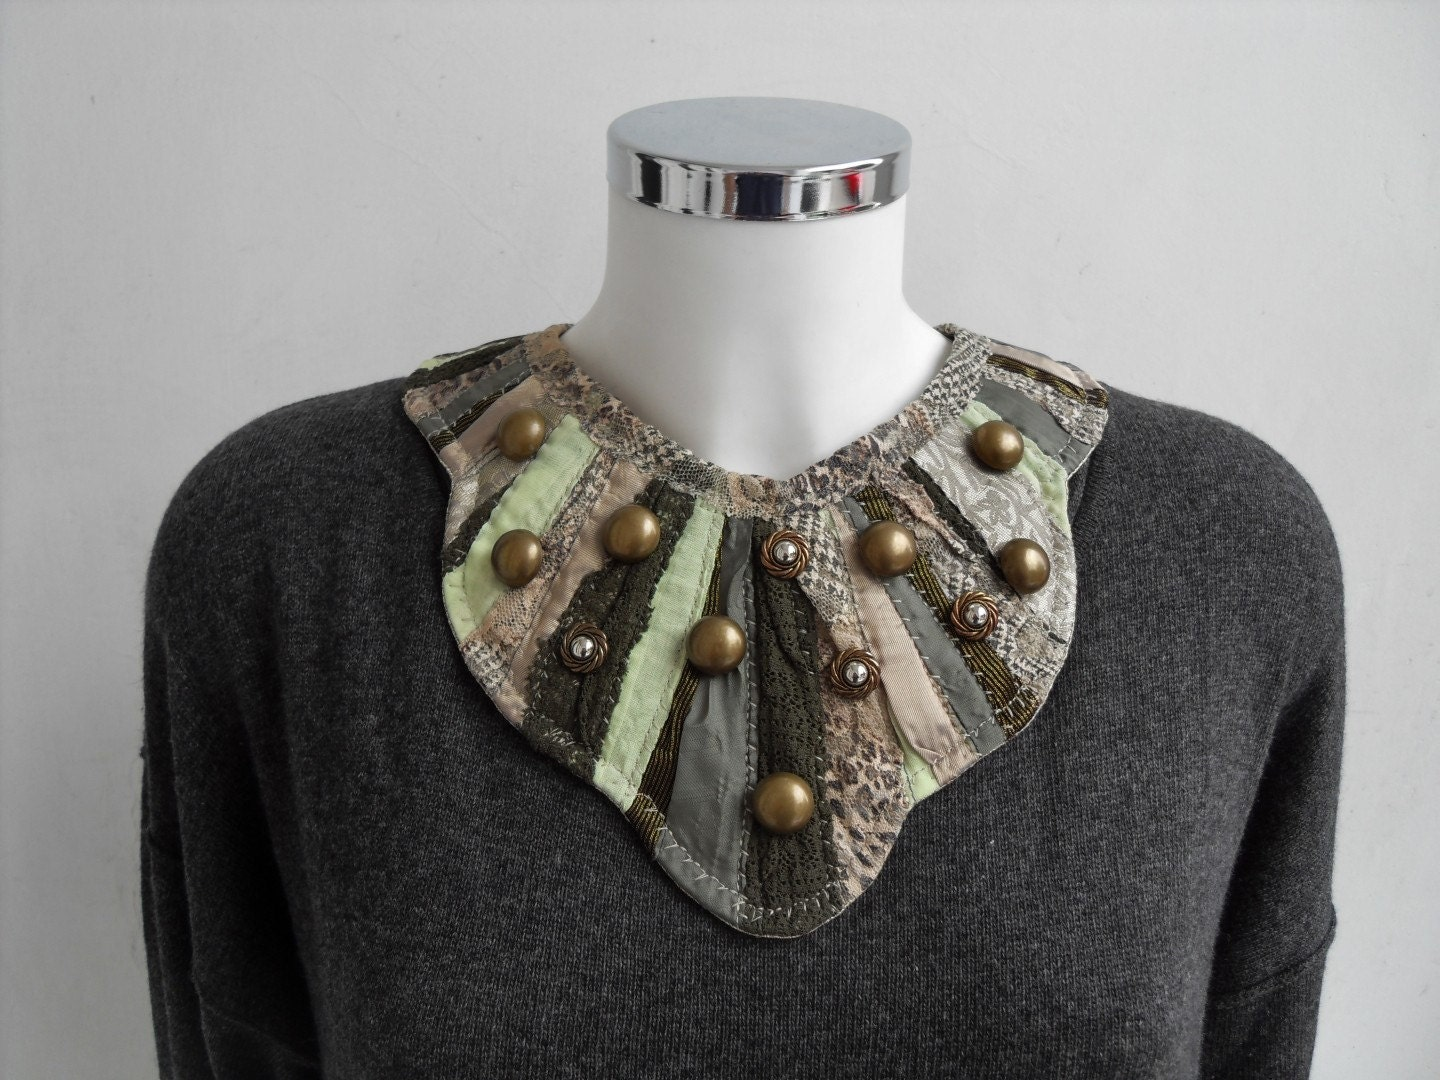 ARMY GAMES AND CAMOUFLAGE COLLAR NECKLACE by UnderReconstruction